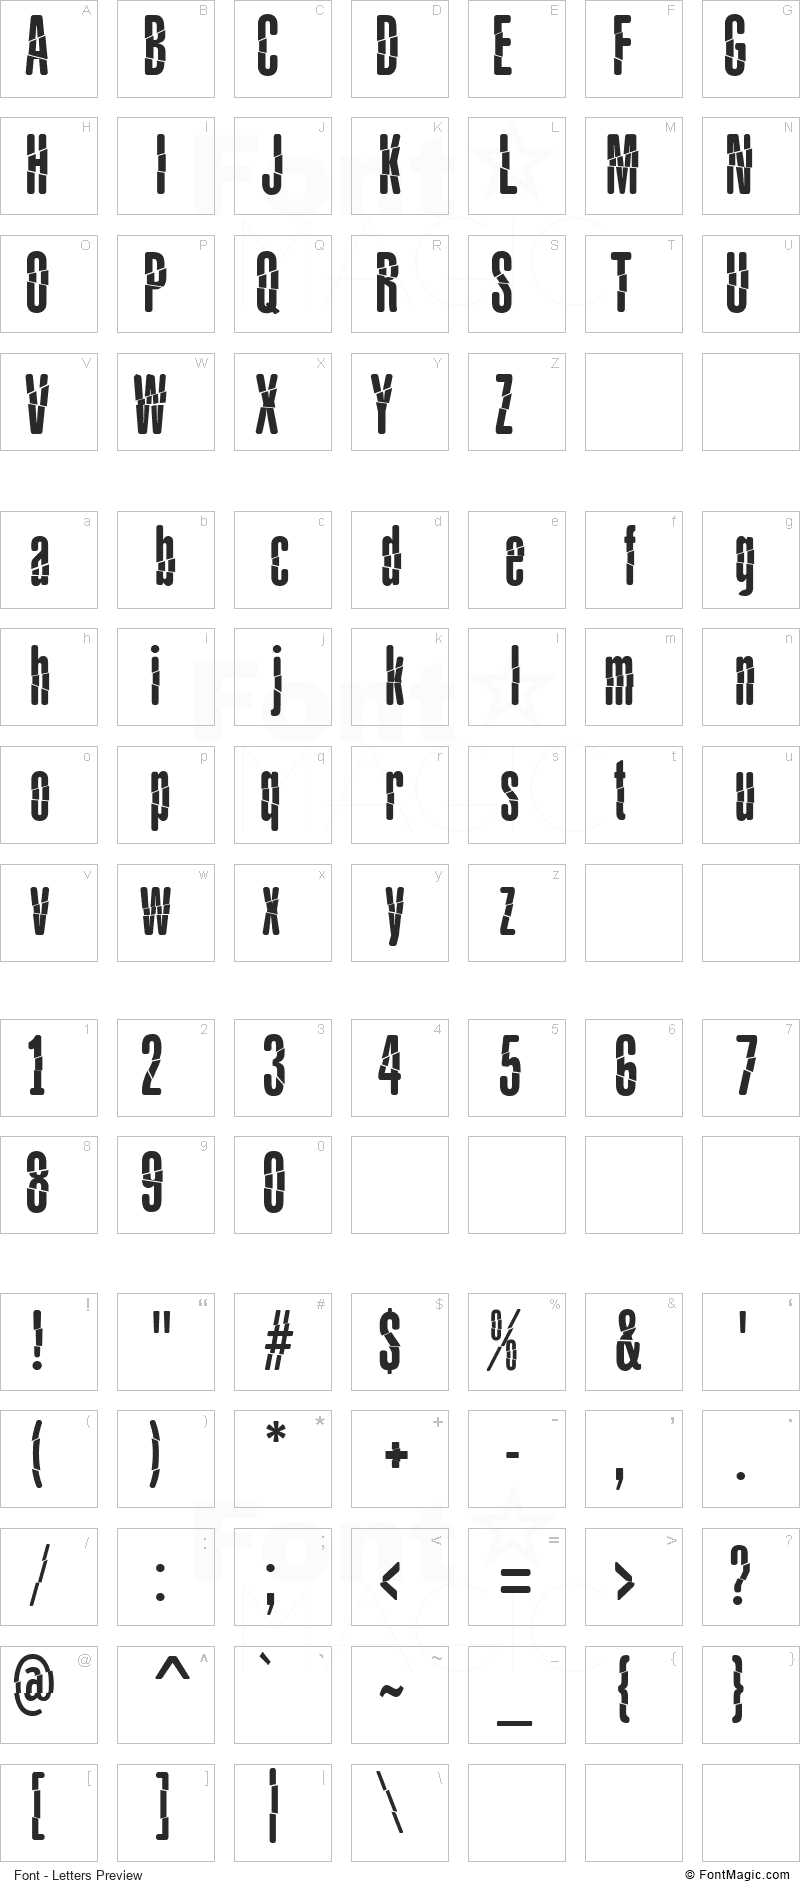 Babalusa Cut Font - All Latters Preview Chart